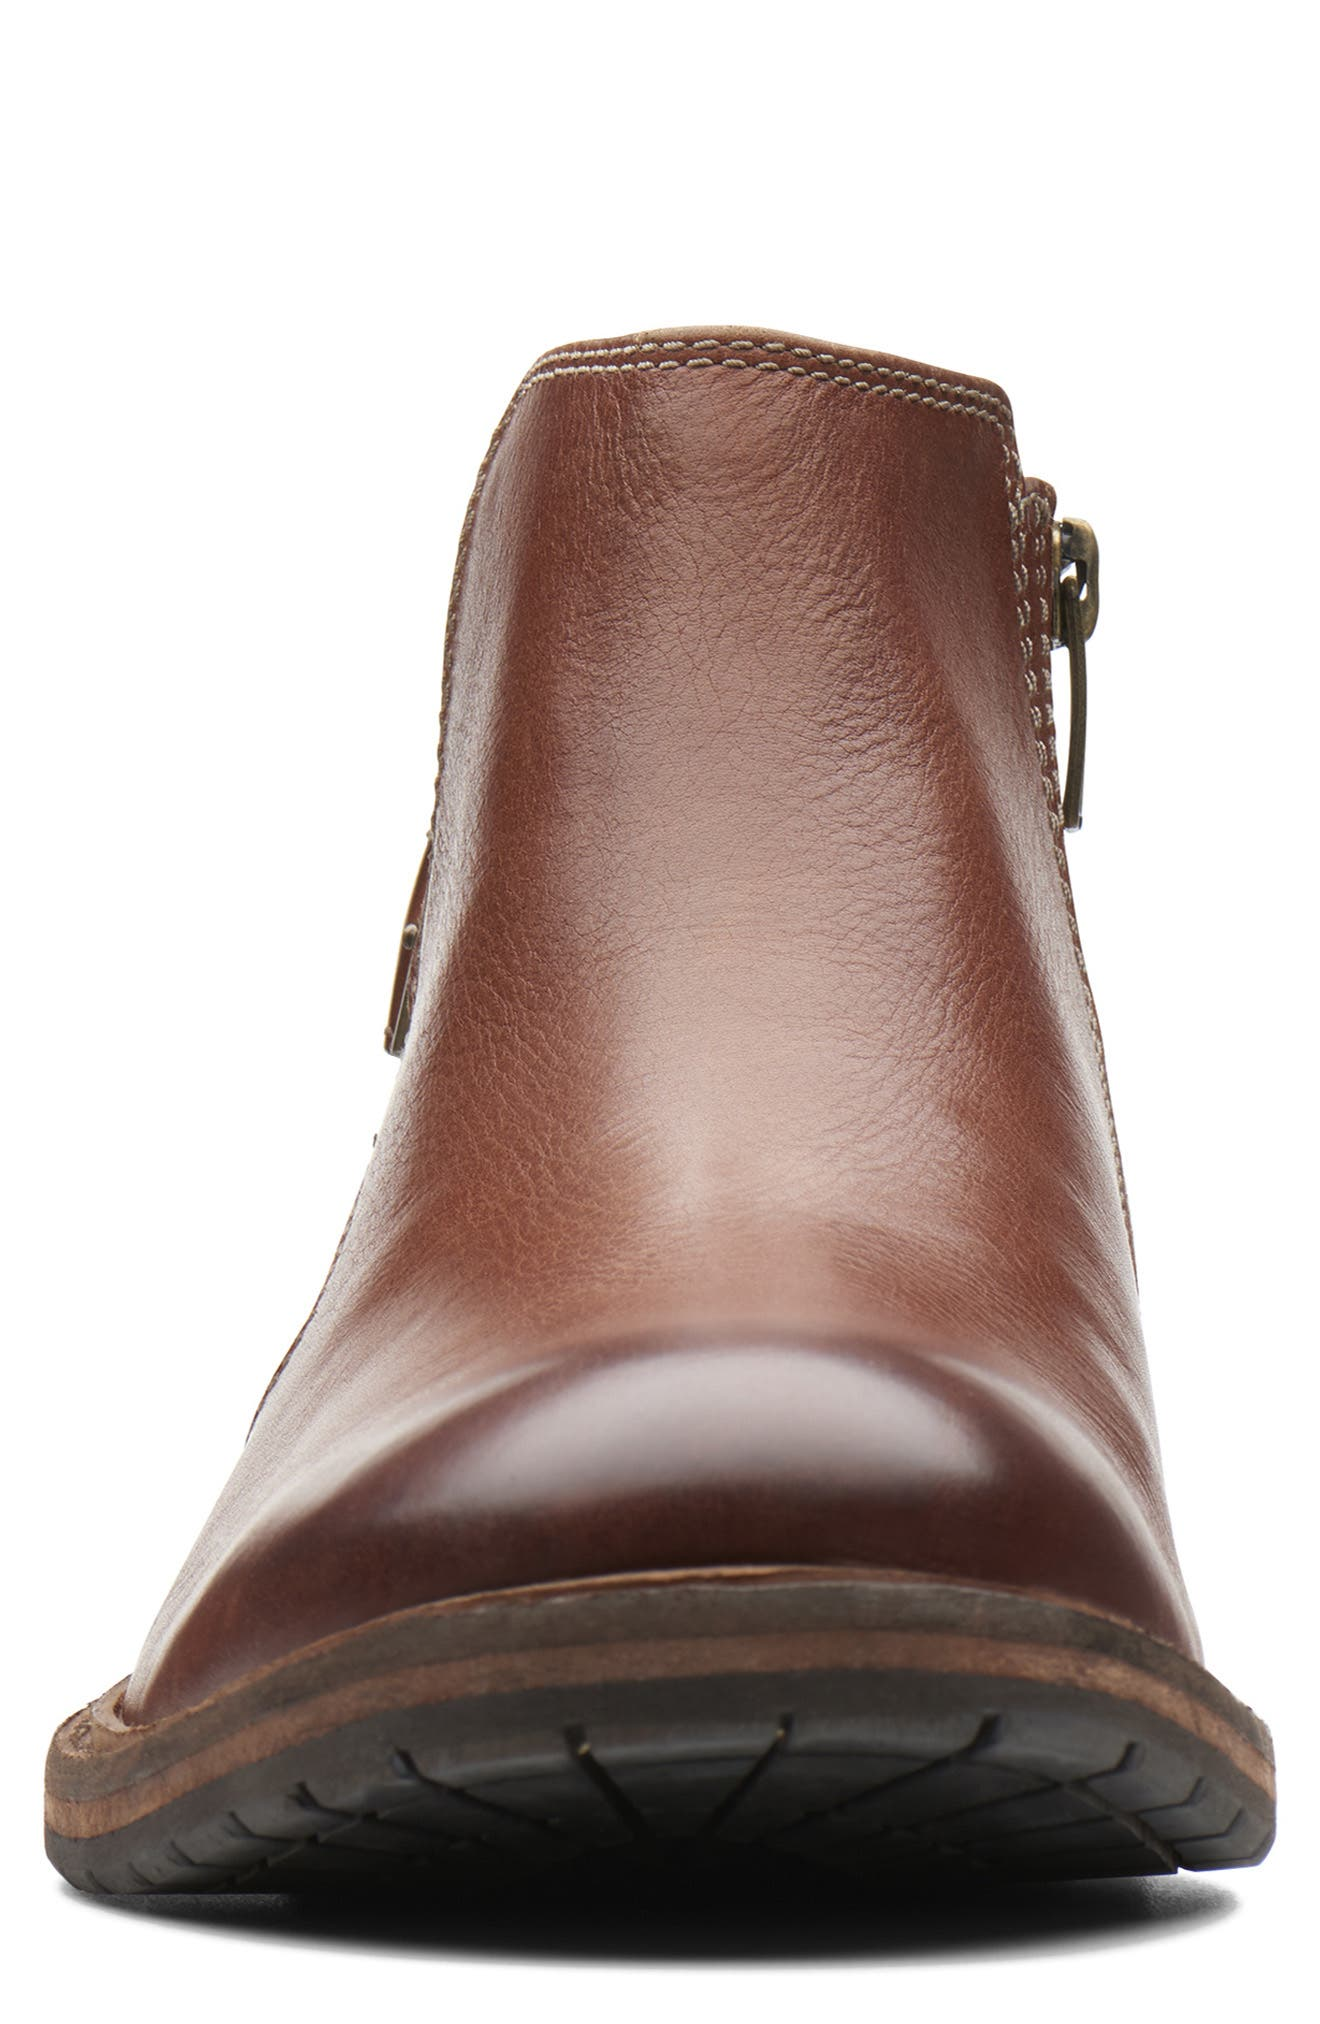 Clarkdale Remi Ankle Boot,                             Alternate thumbnail 3, color,                             DARK TAN LEATHER